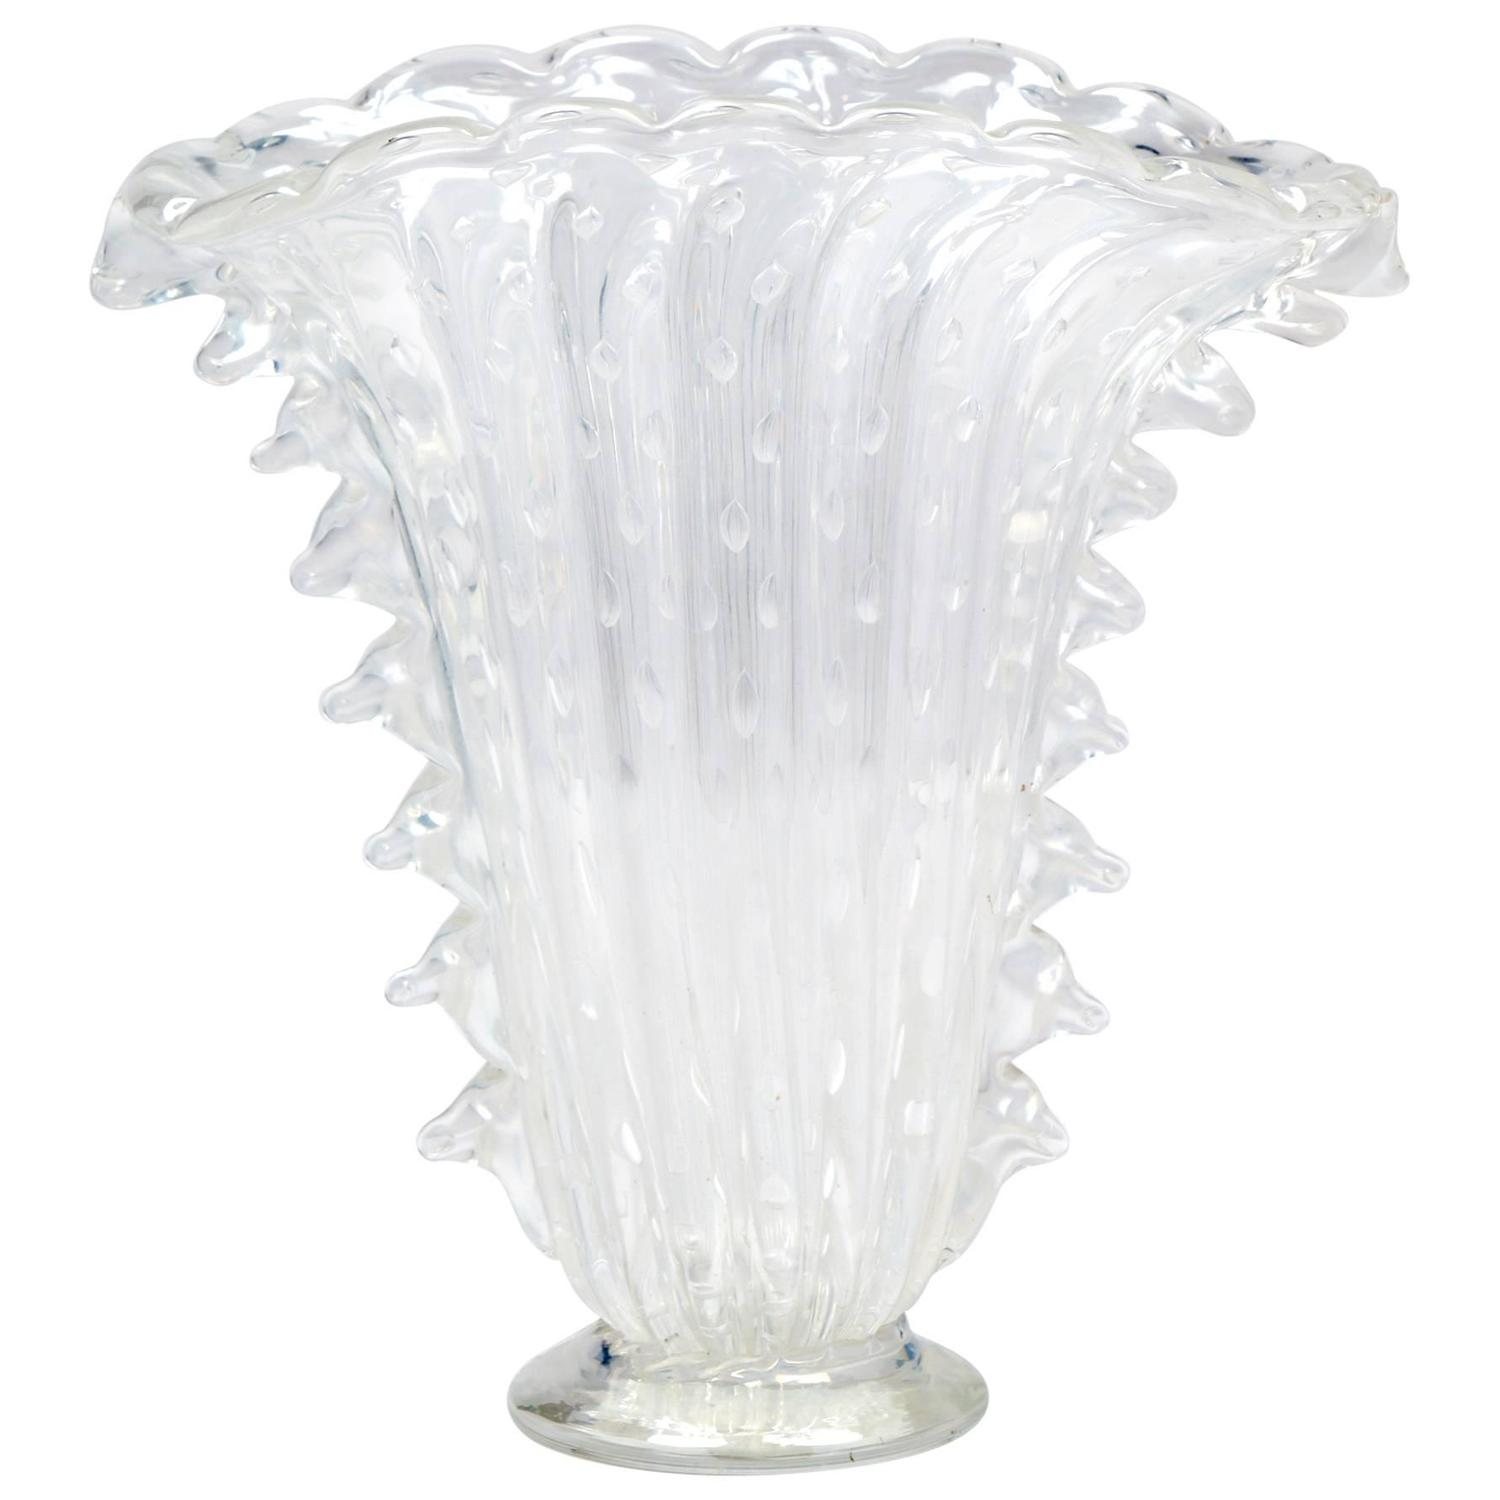 glass beautiful clear vases idea home vase candle holders aprilvase cylinder